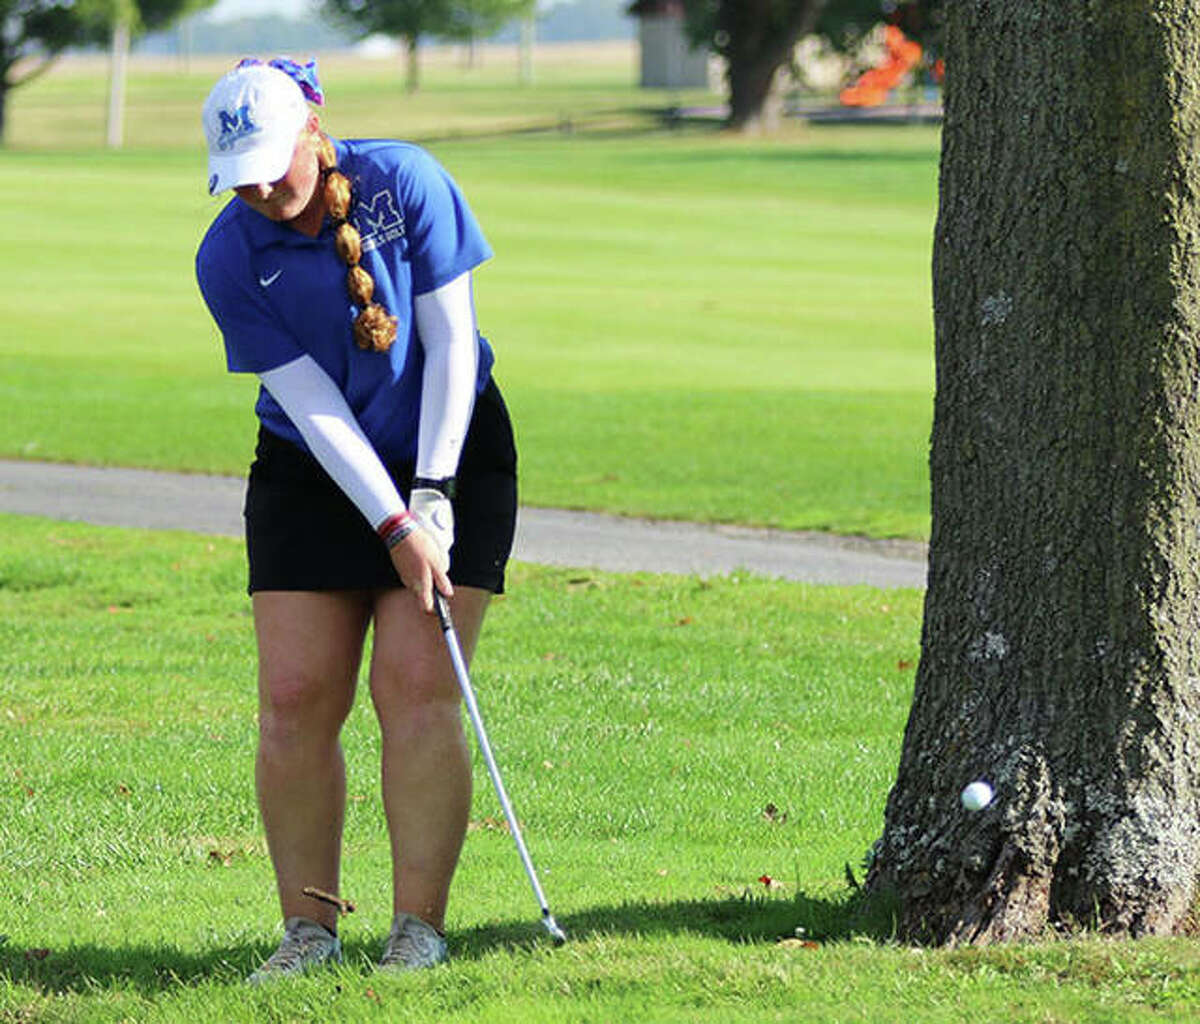 Marquette's Gracie Piar hits back on the fairway on the first hole Thursday in the regional at Belk Park in Wood River. Piar bogeyed the hole, but came back to shoot 7-under par 65 to win the tournament.